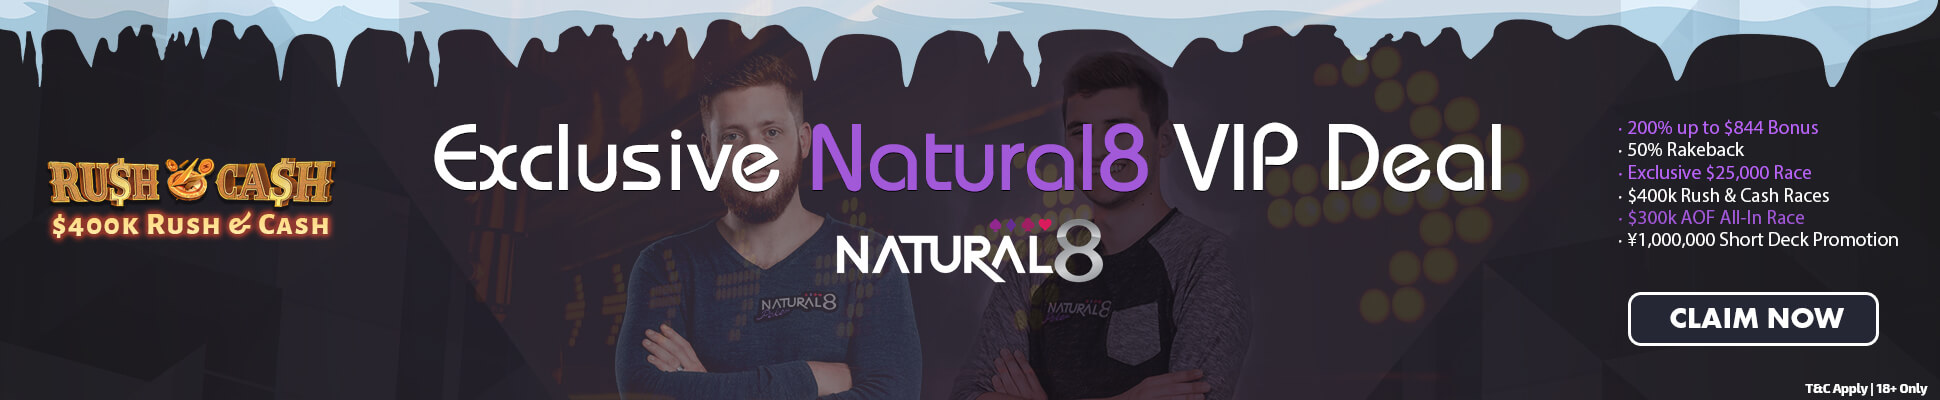 natural8-slider-created-february-2020